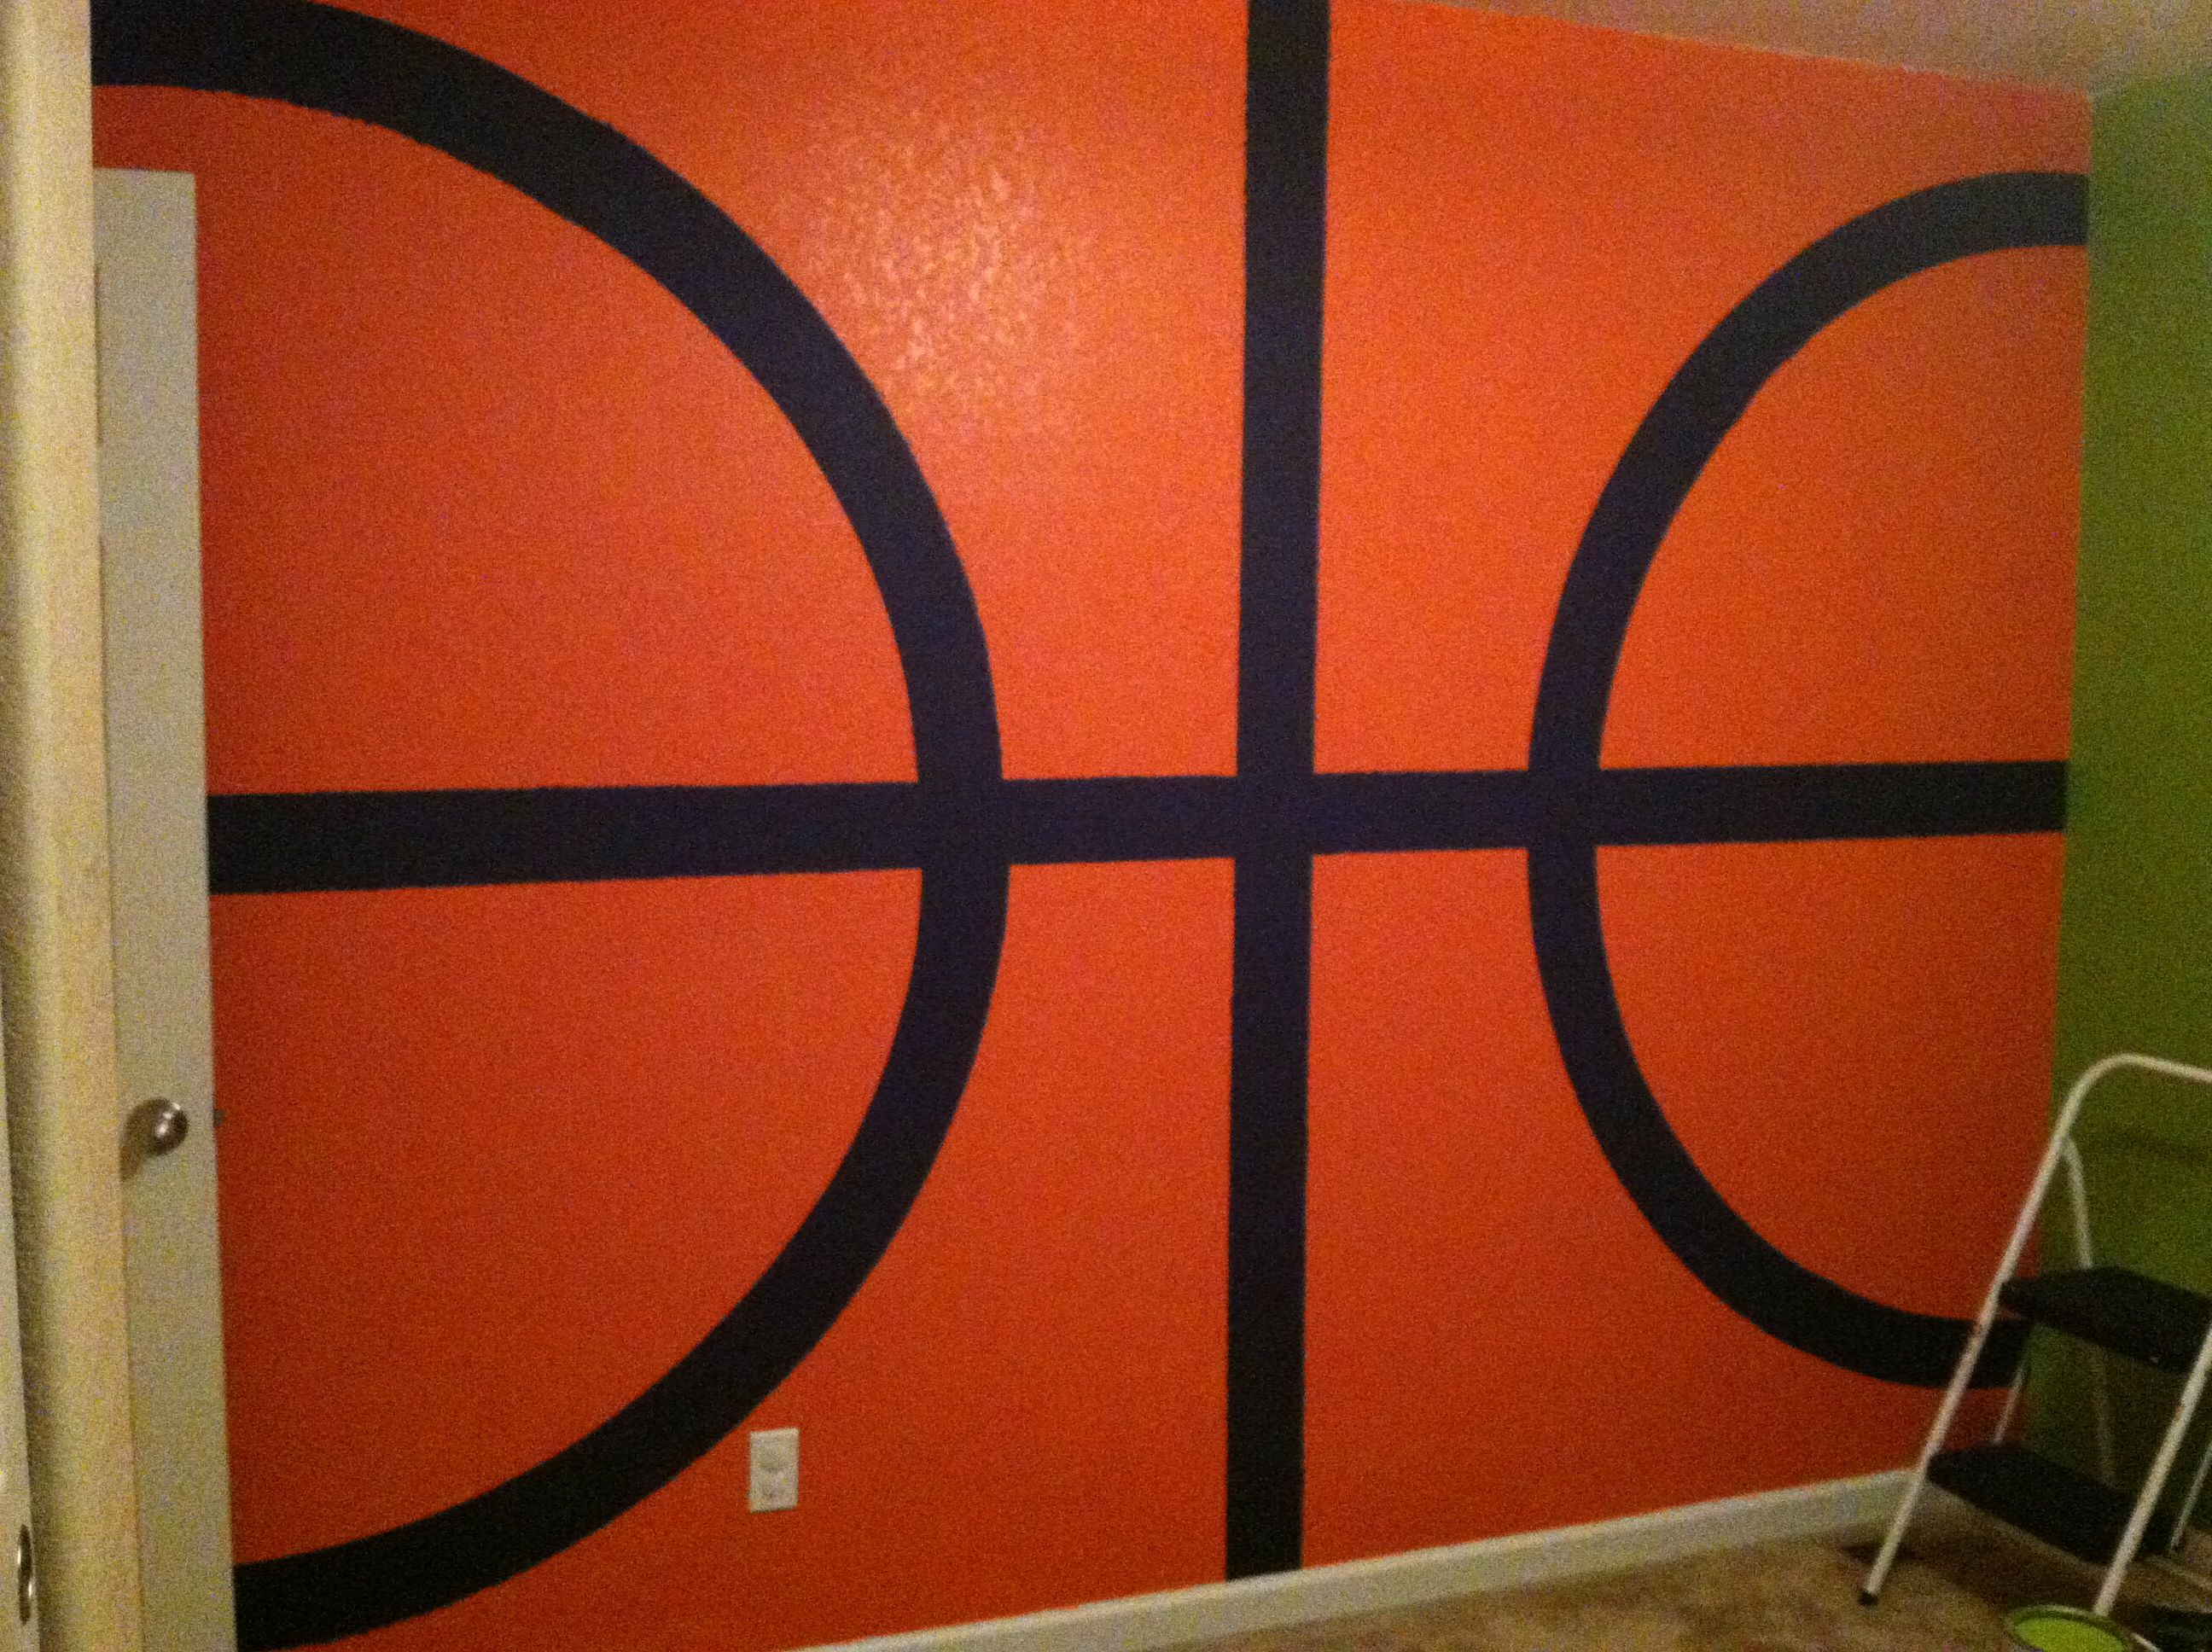 Basketball wall finished tennis and football walls up next basketball wall finished tennis and football walls up next amipublicfo Choice Image